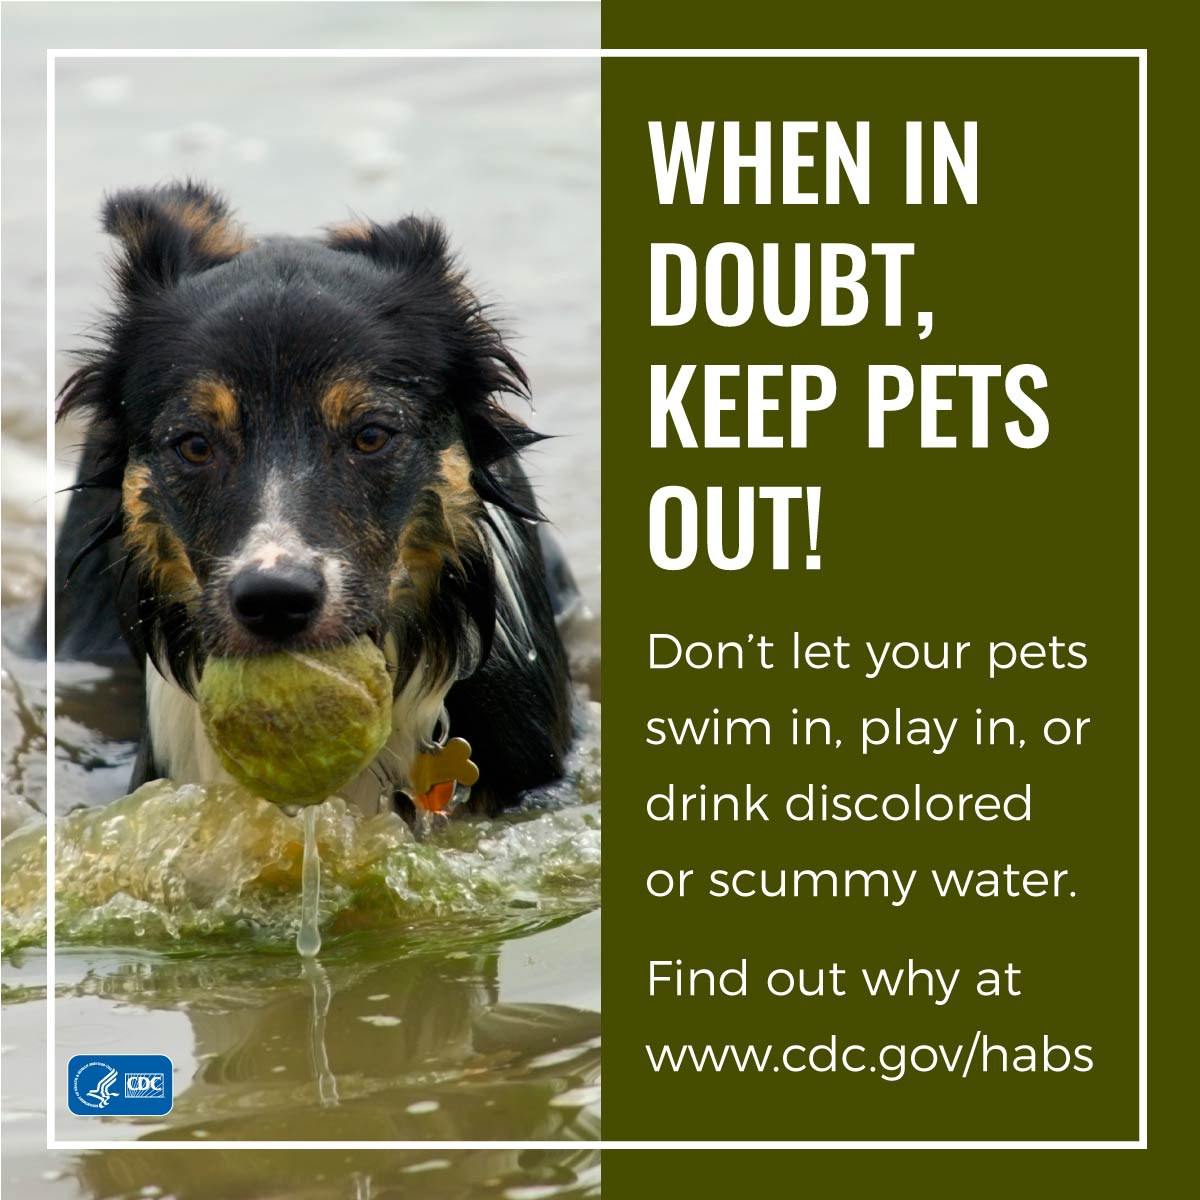 When in doubt, keep pets out!